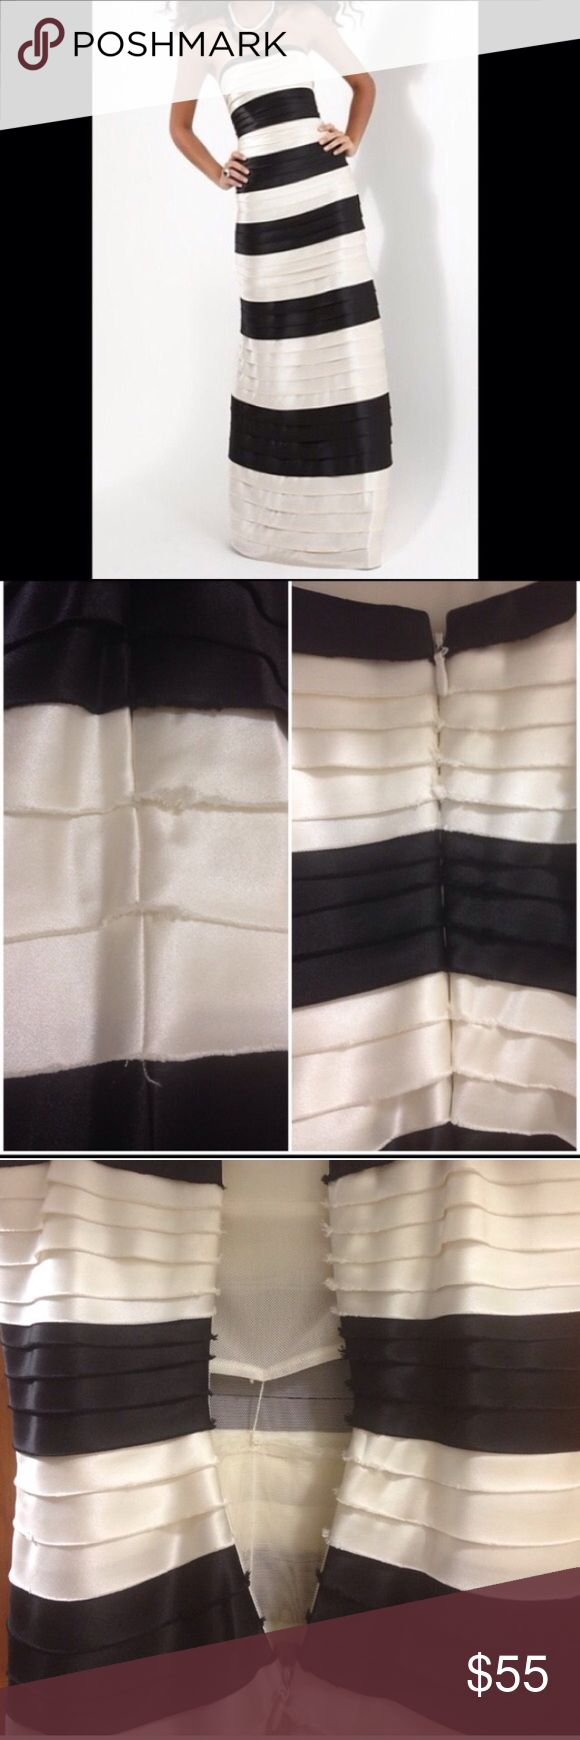 """BCBG Black and White (more off white) long dress BCBG Black and White (more off white) long strapless dress. A few areas on the dress along the panels that are frayed. Not noticeable when wearing. Can be seen in the pictures. 55"""" length. BCBGMaxAzria Dresses Strapless"""